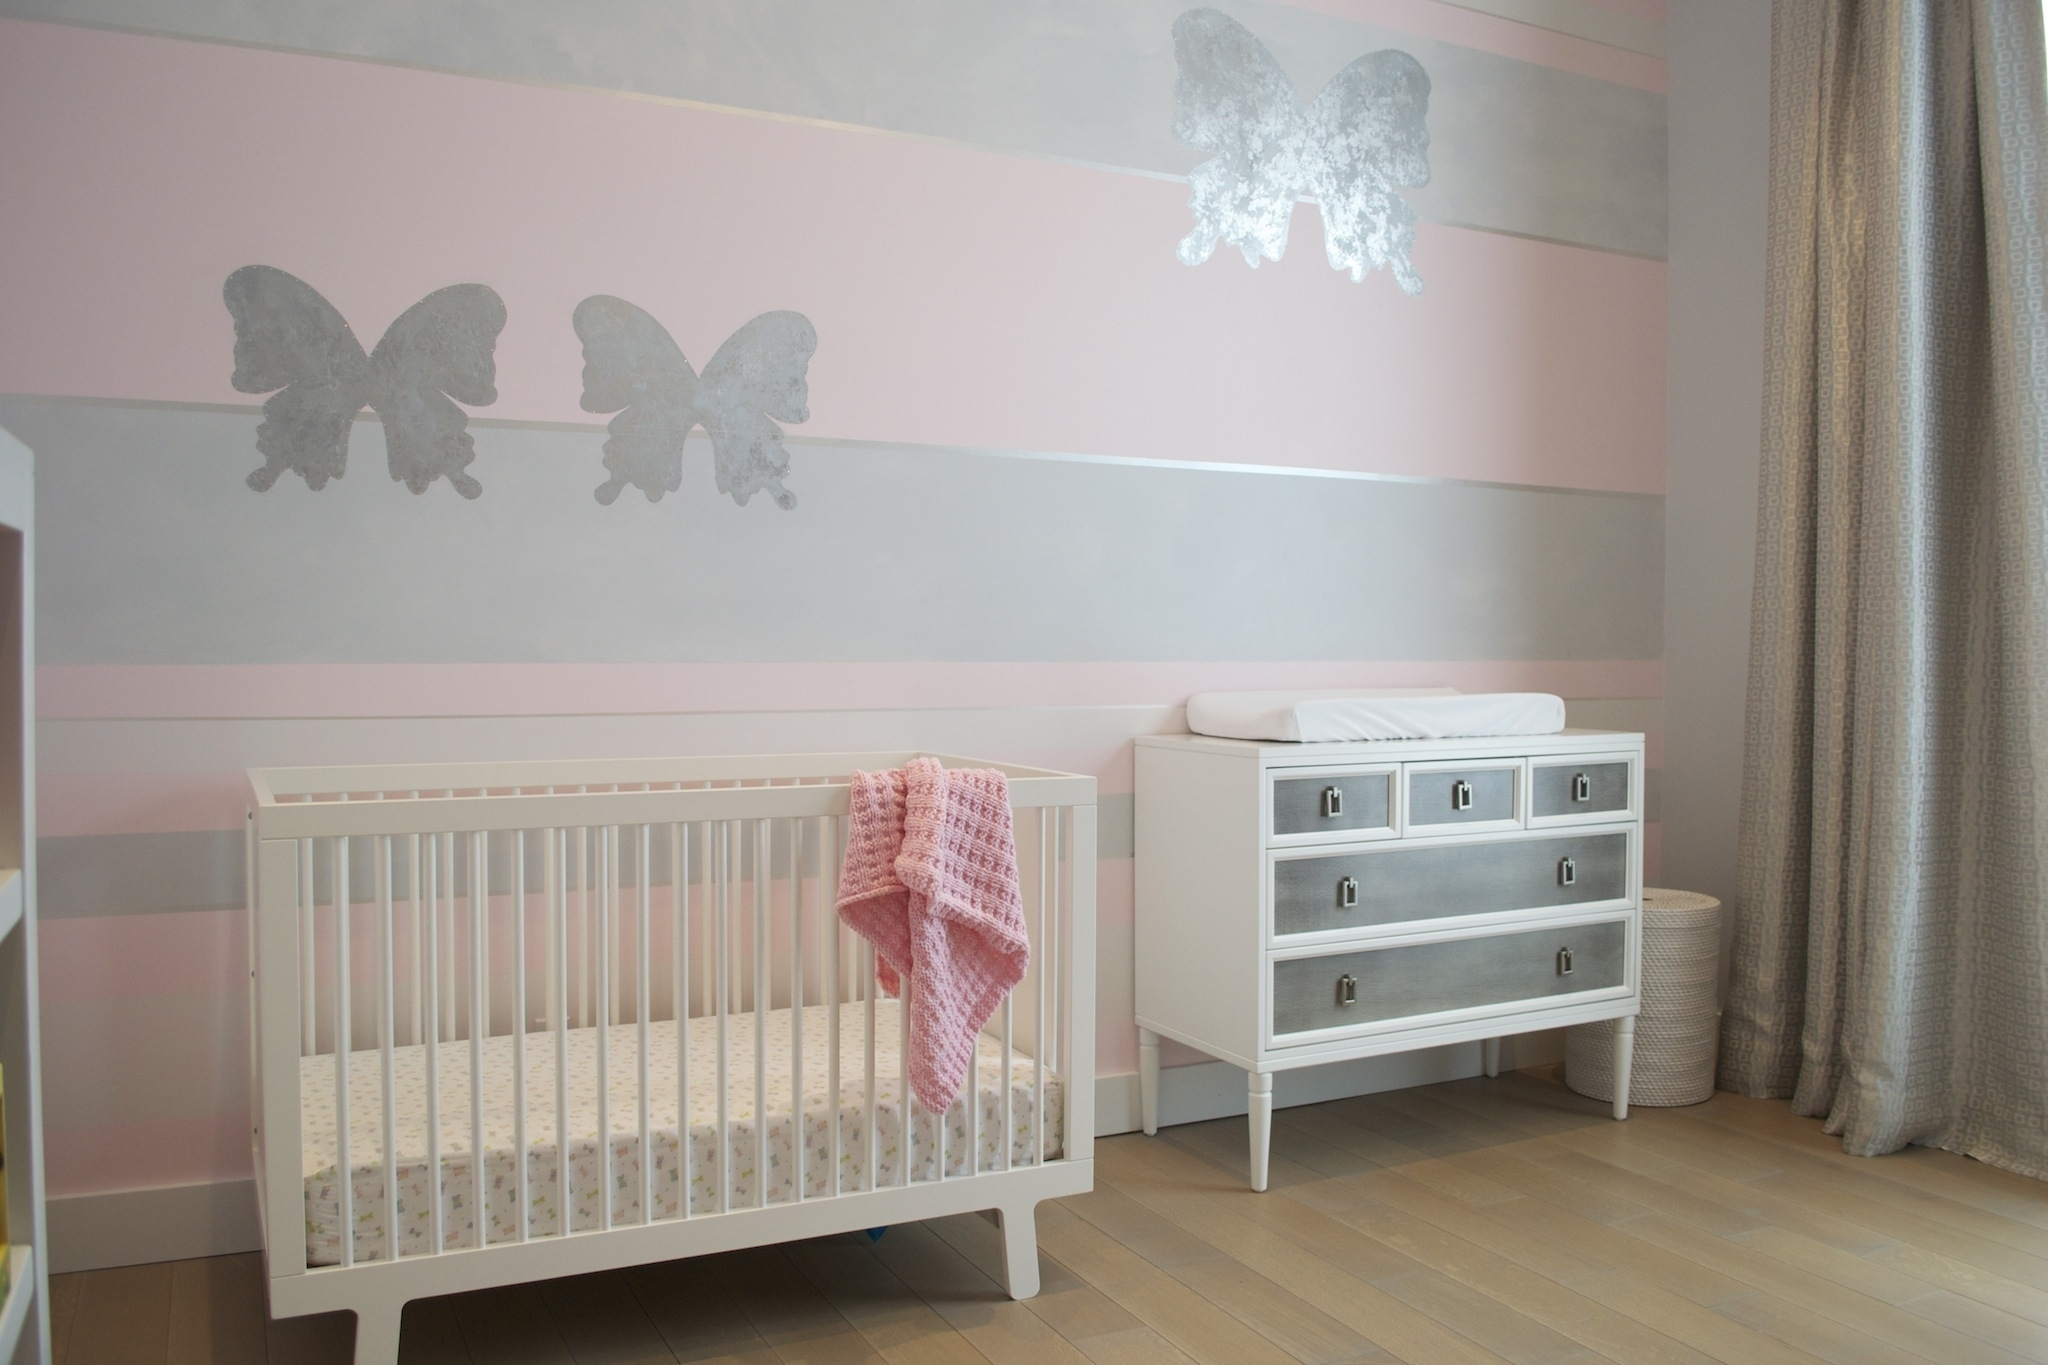 Design Reveal: Pink Butterfly Nursery – Project Nursery Within Current Girl Nursery Wall Accents (View 8 of 15)